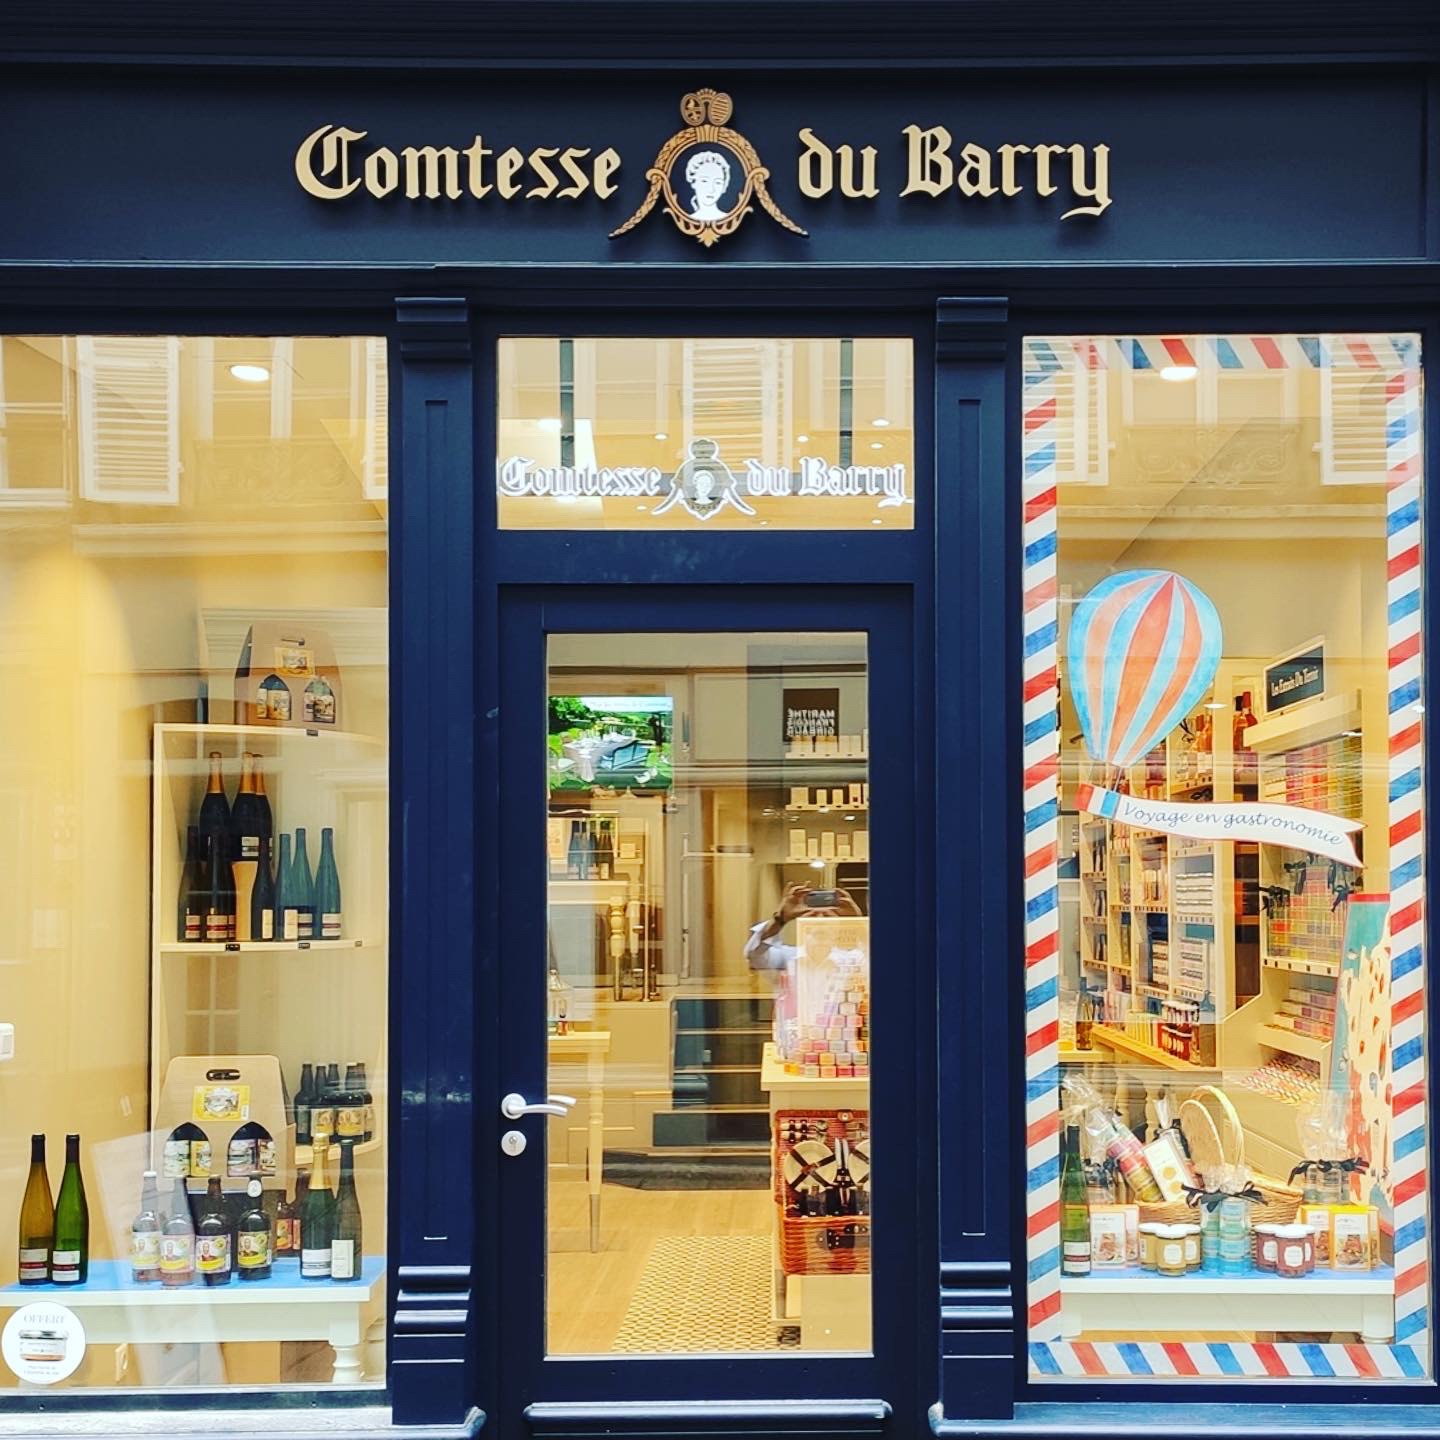 Boutique Veando Comtesse du Barry